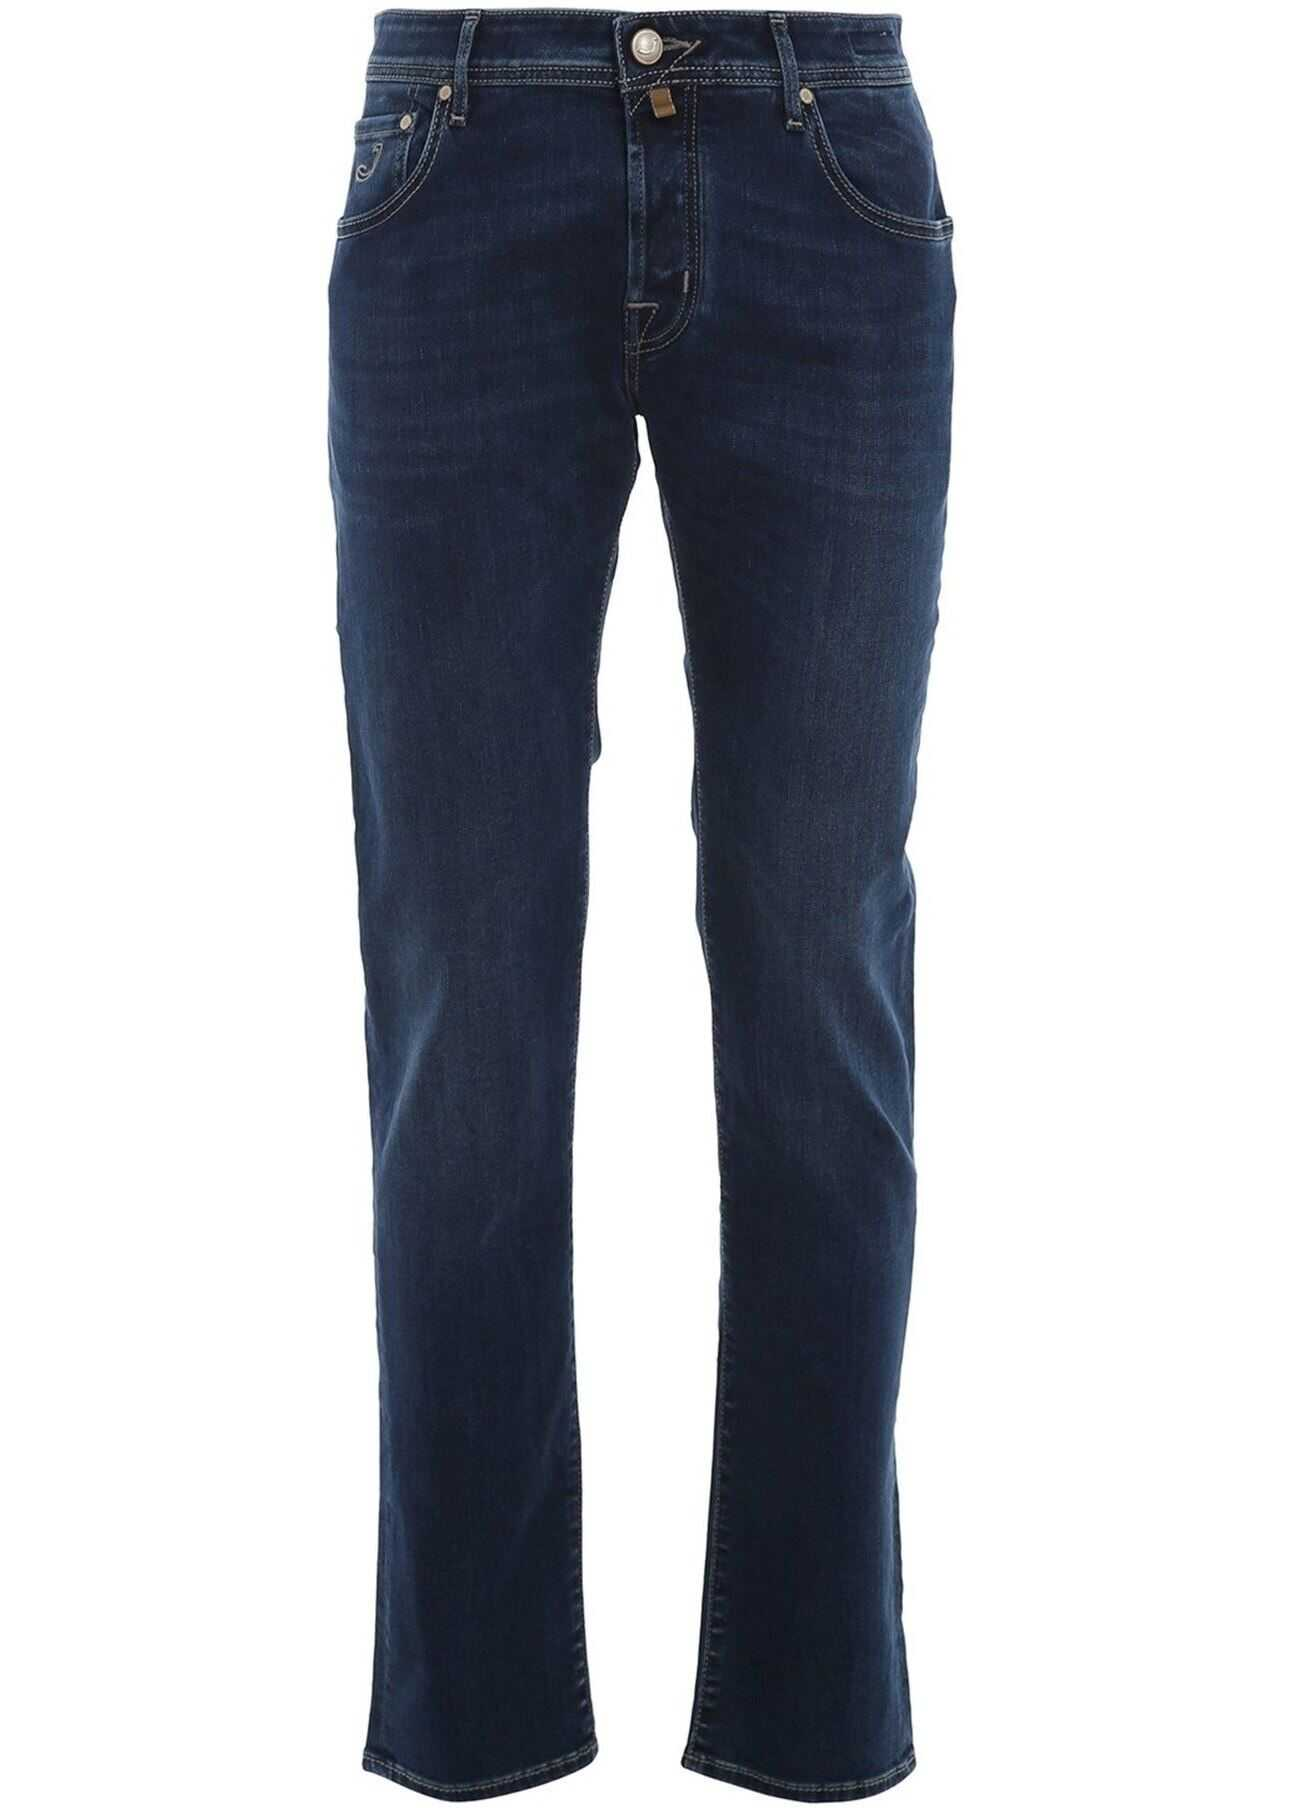 Jacob Cohen Style 622 Denim Jeans In Blue Blue imagine